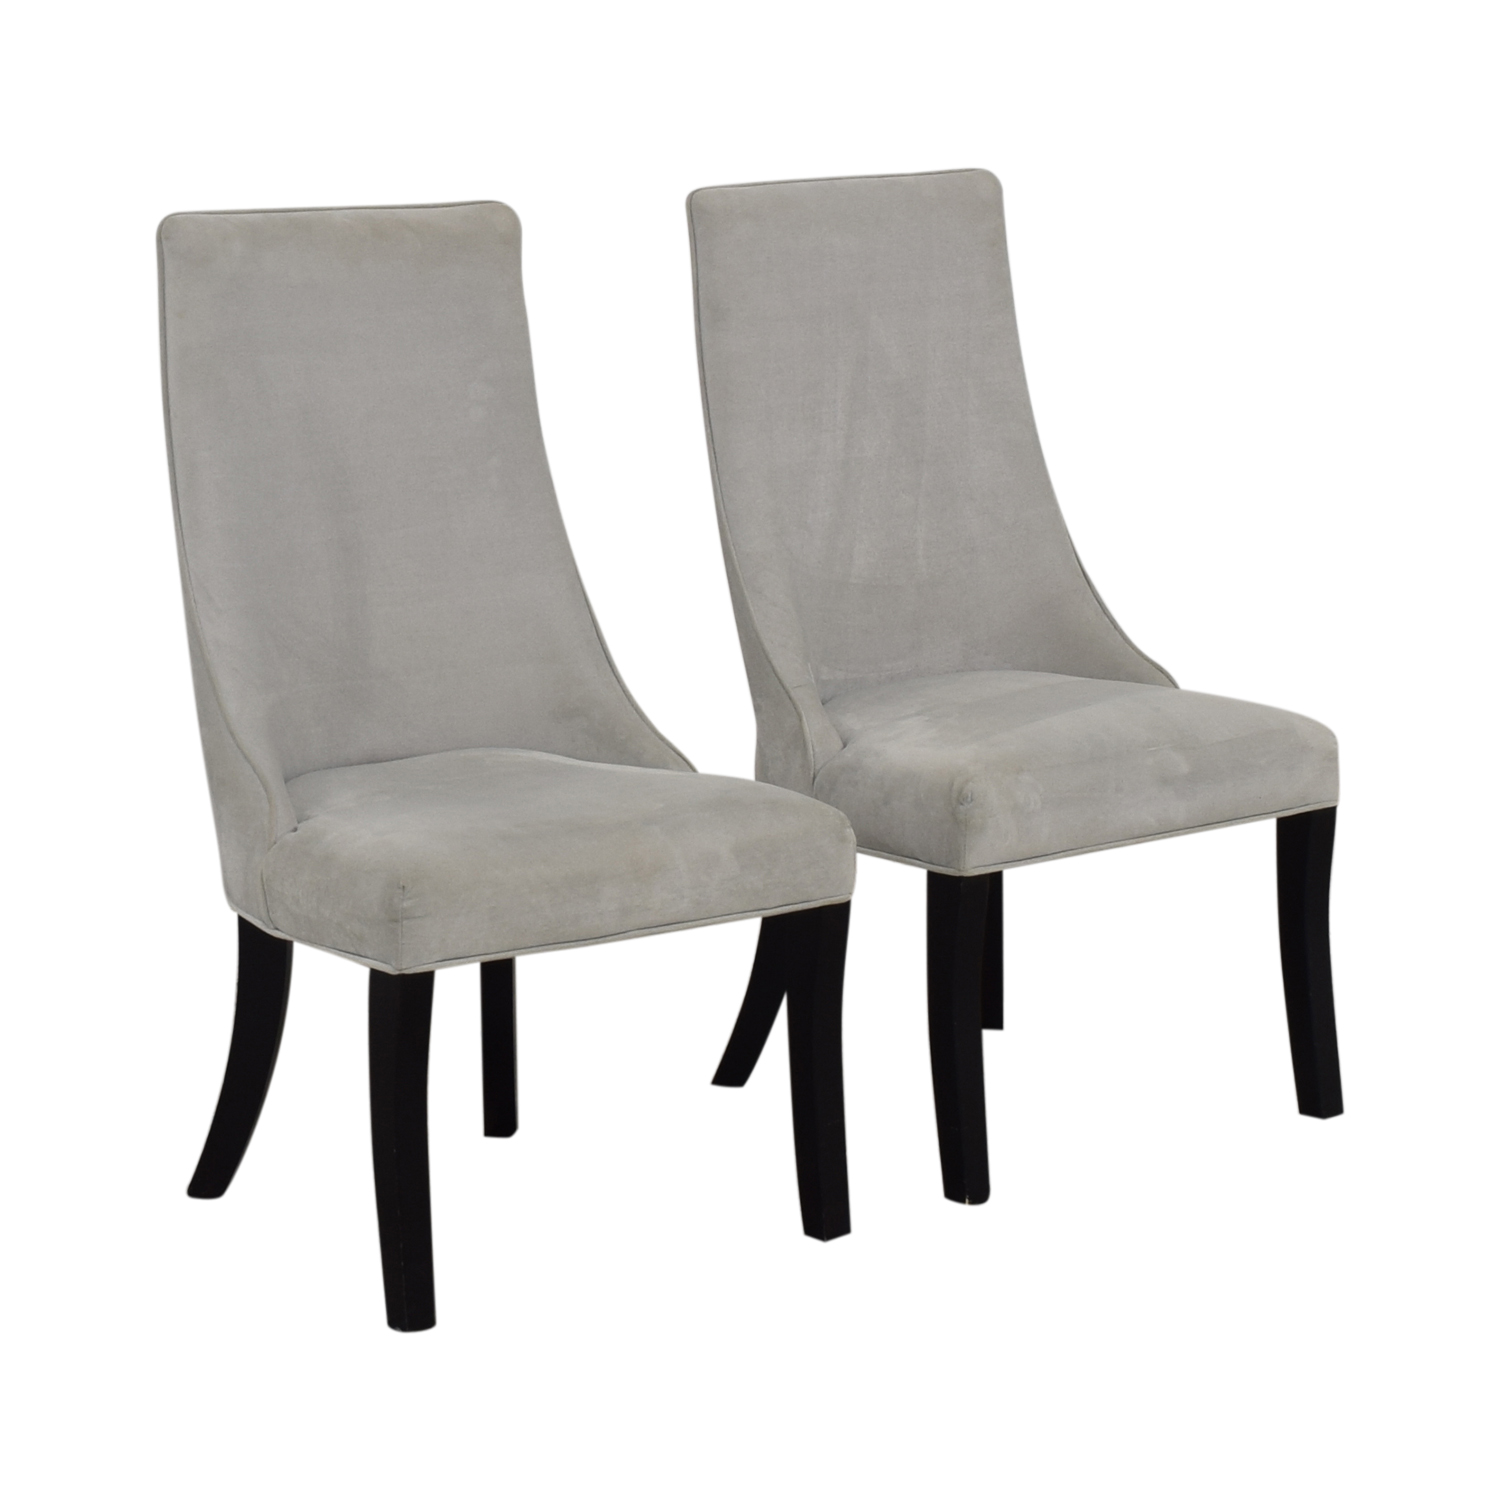 Structube Velvet Parsons Chairs price